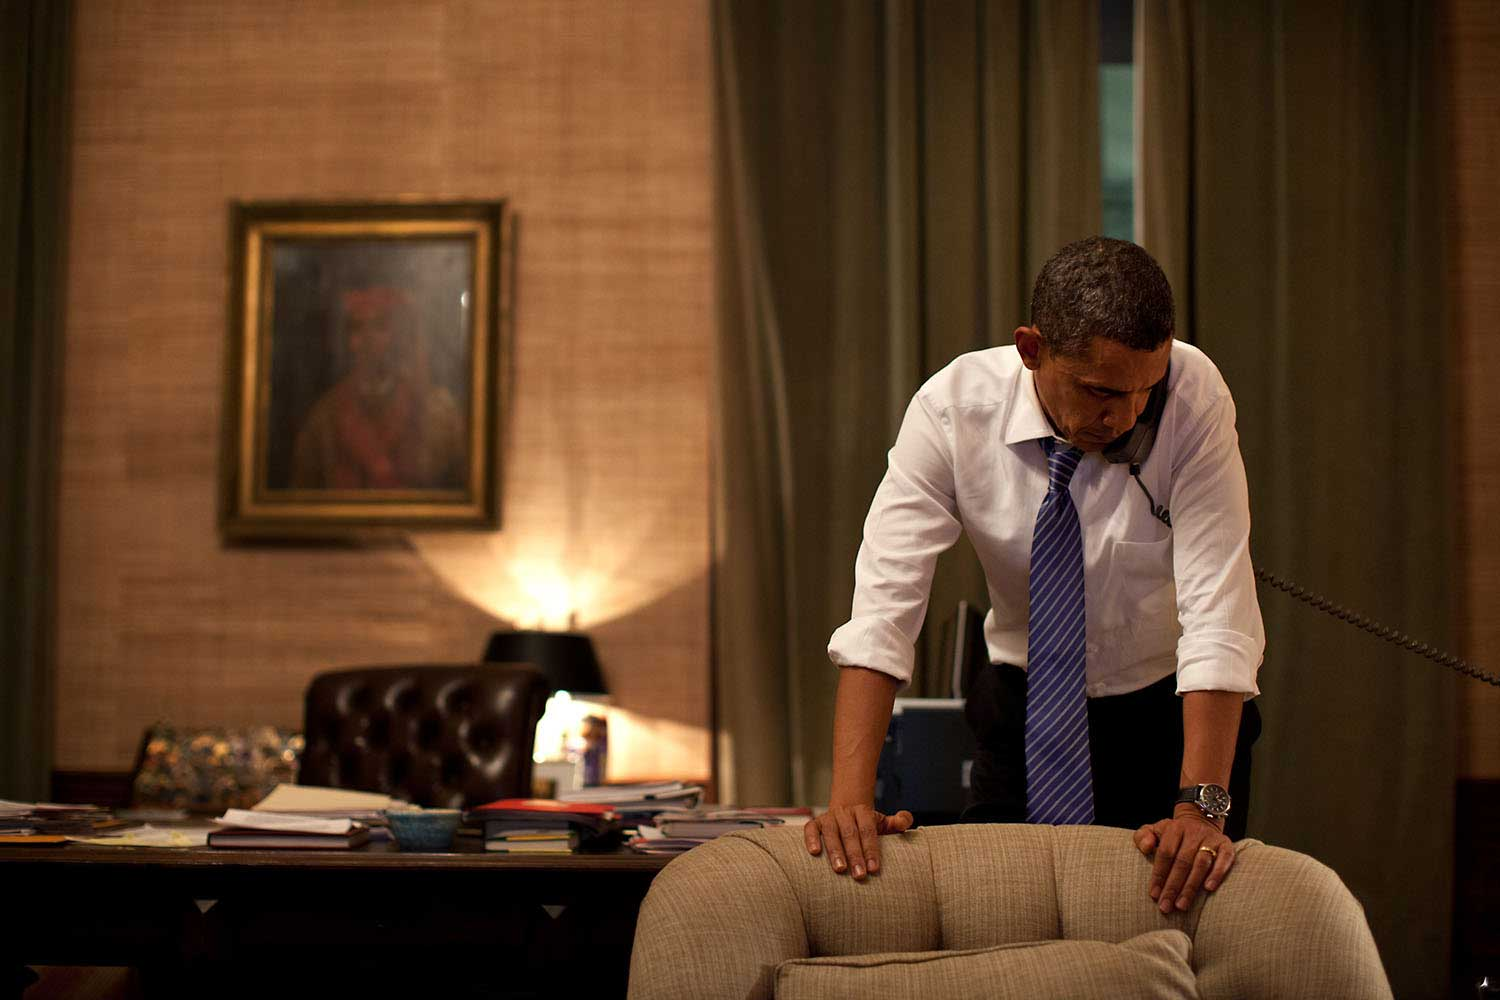 Late at night in the Treaty Room office in the White House residence, Nov. 23, 2010, the President talks on the phone with President Lee Myung-bak of South Korea after North Korea had conducted an artillery attack against the South Korean island of Yeonpyeong.